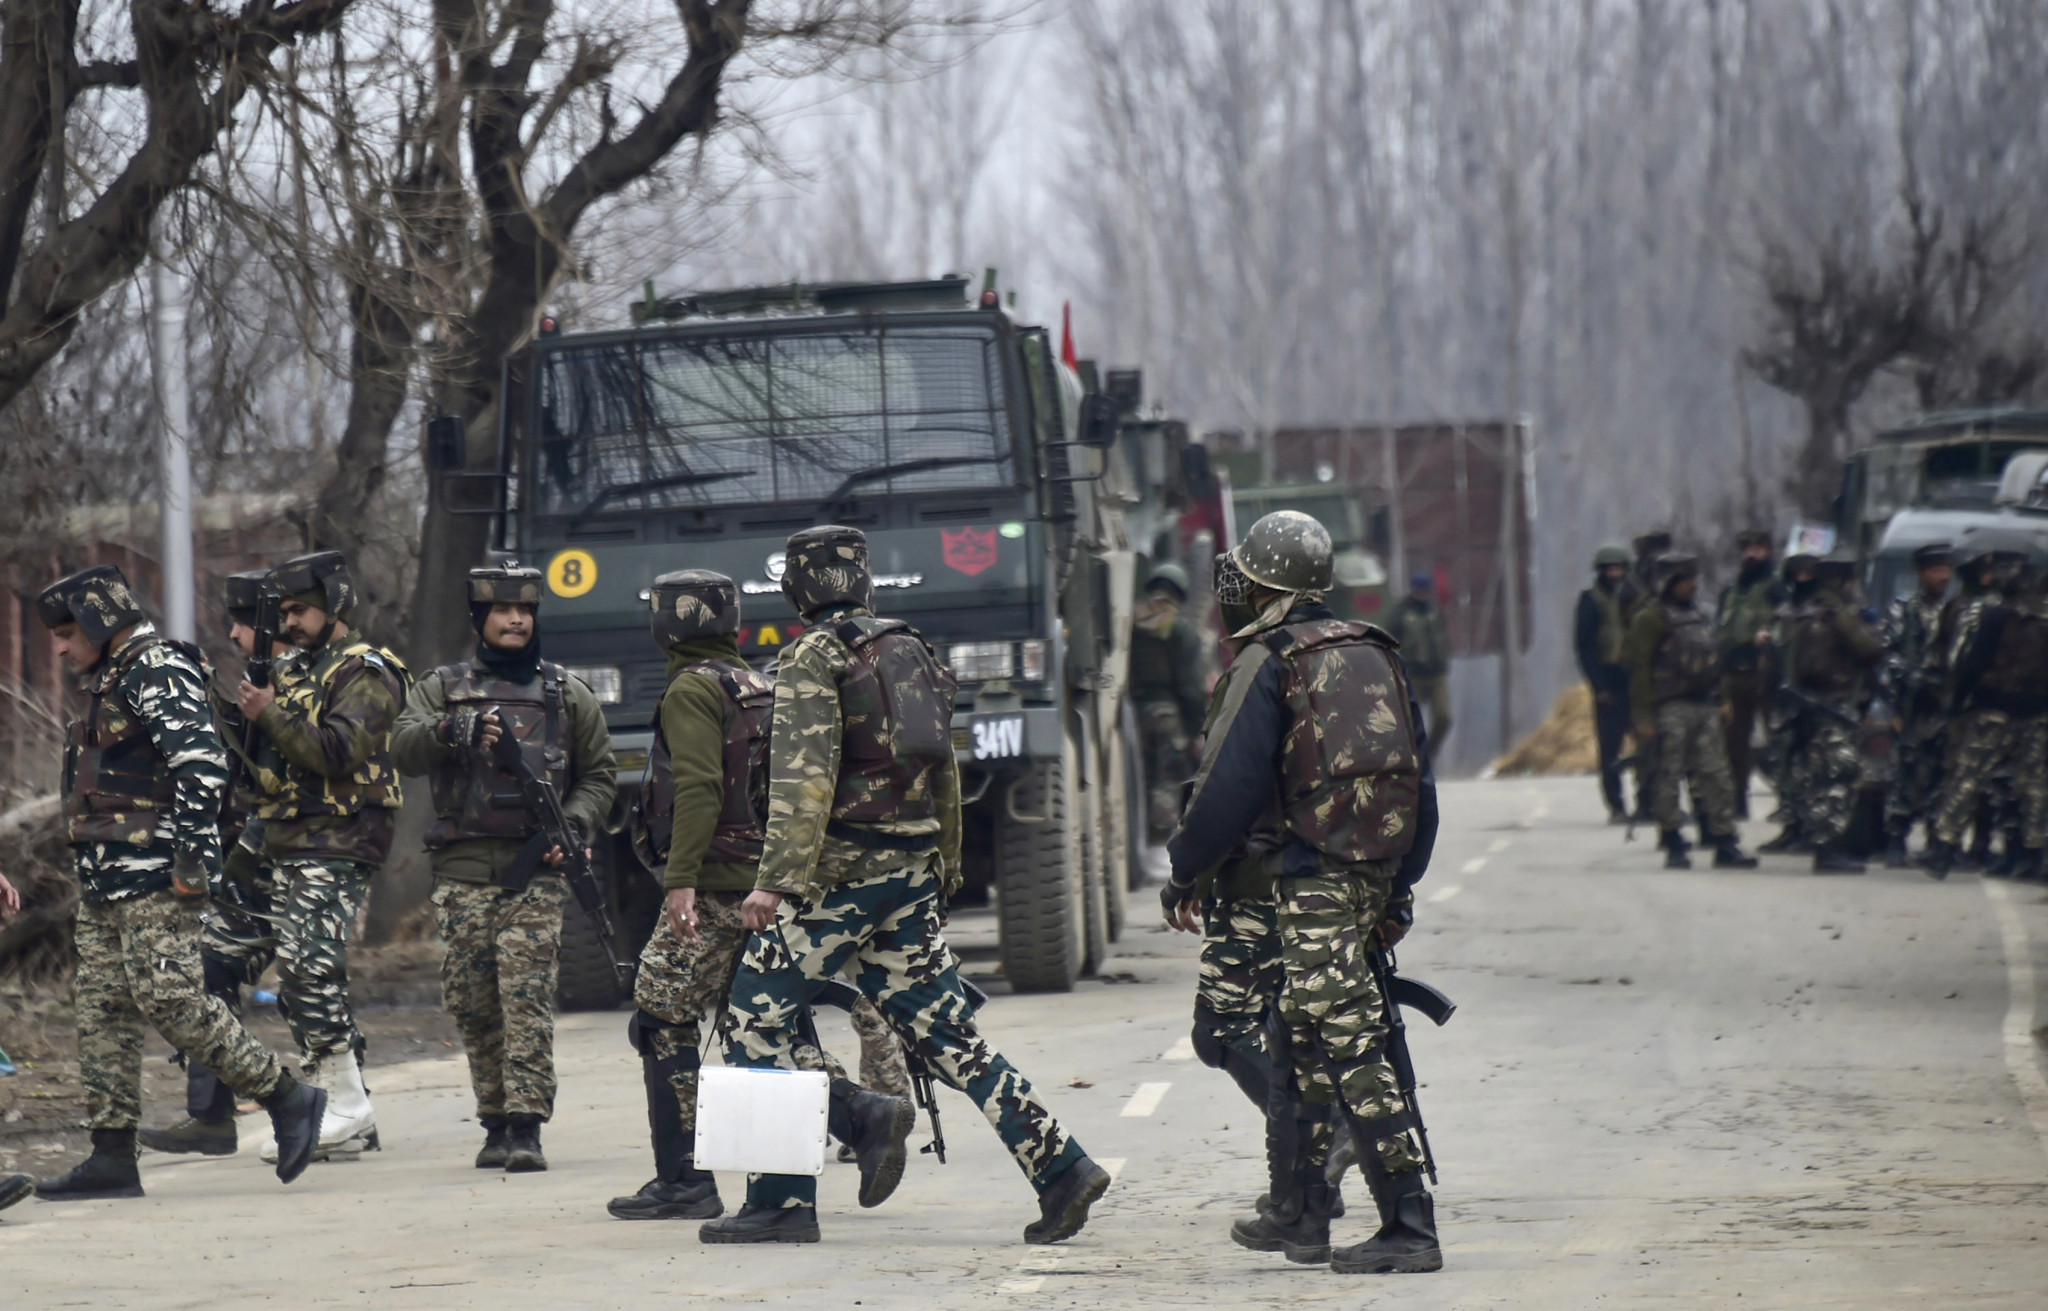 Tensions between India and Pakistan have soared since a deadly suicide bombing in Indian controlled Kashmir earlier this month ©Getty Images